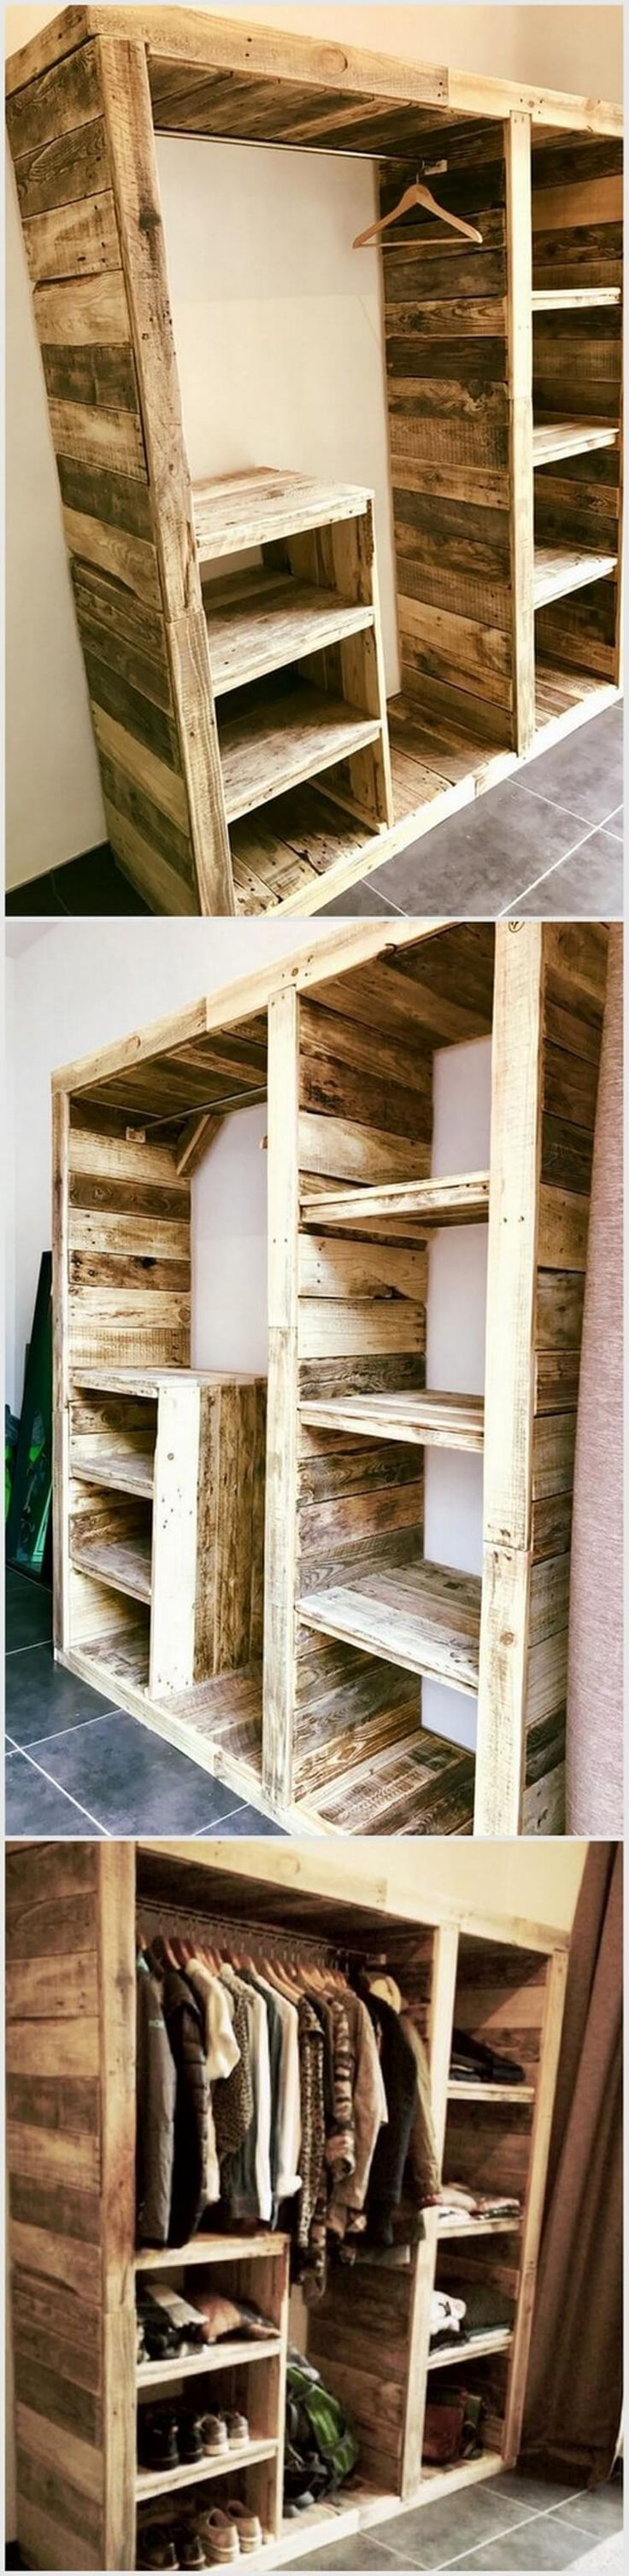 12 DIY Pallet Projects for Your Home Improvement